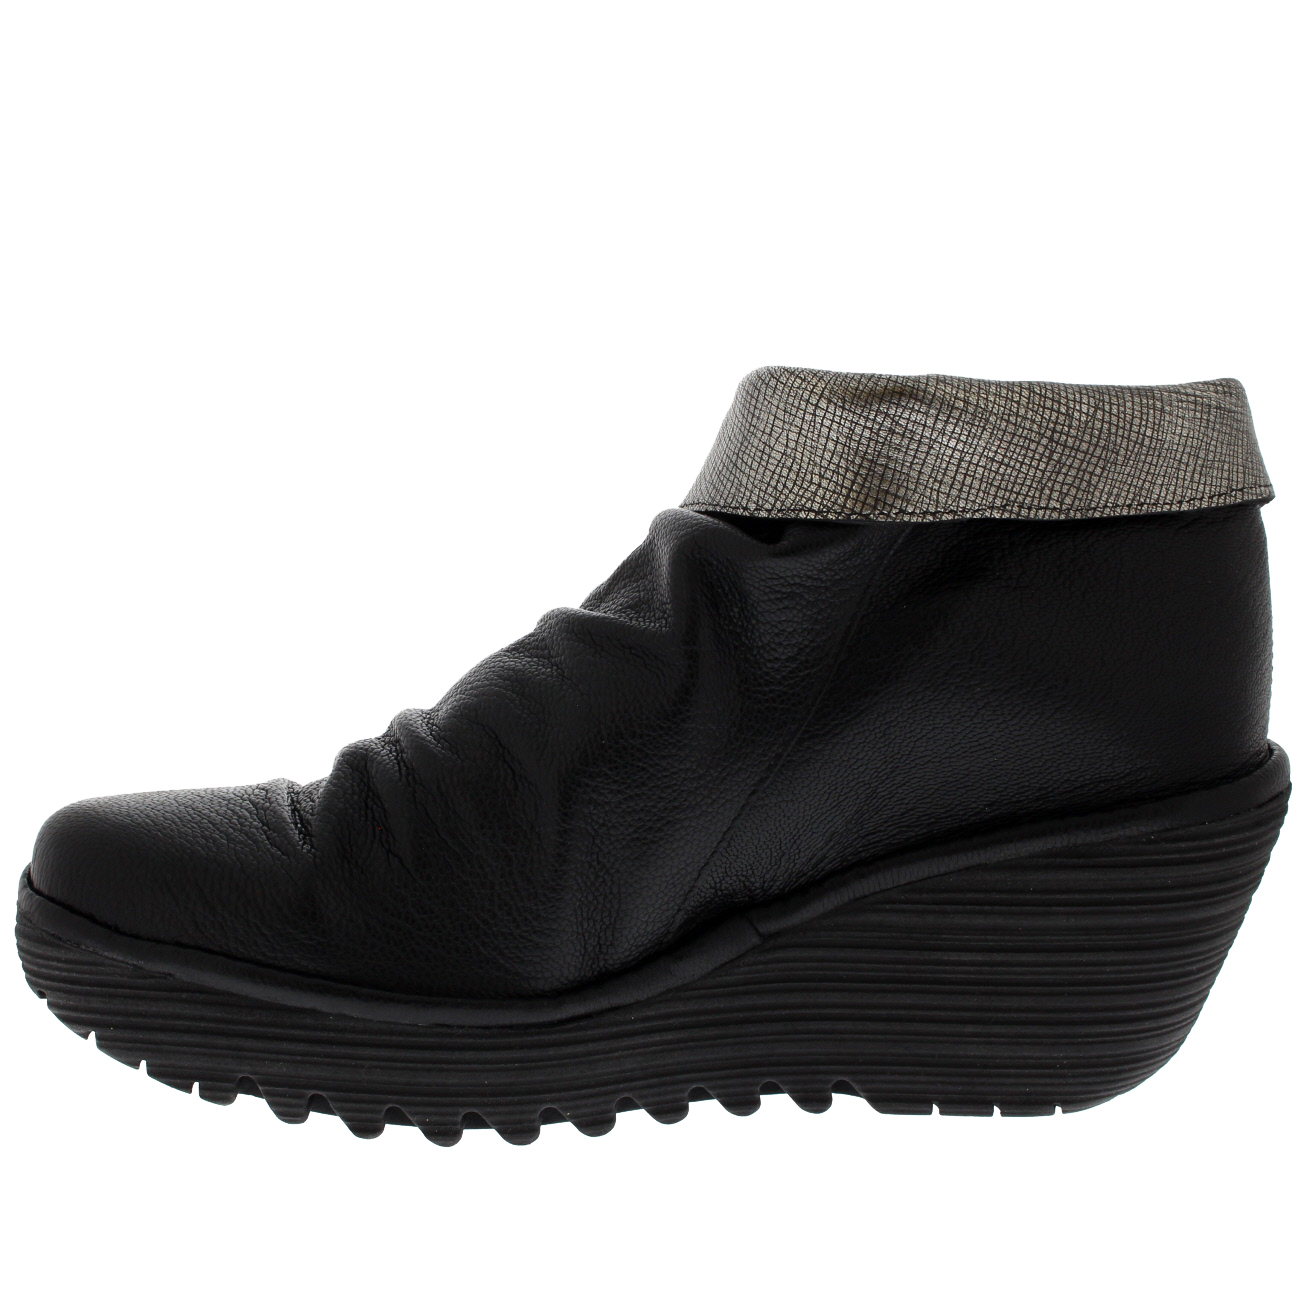 37f19056631 Womens Fly London Yoxi Casual Mousse Leather Black Wedge Heel Ankle Boot US  5-11